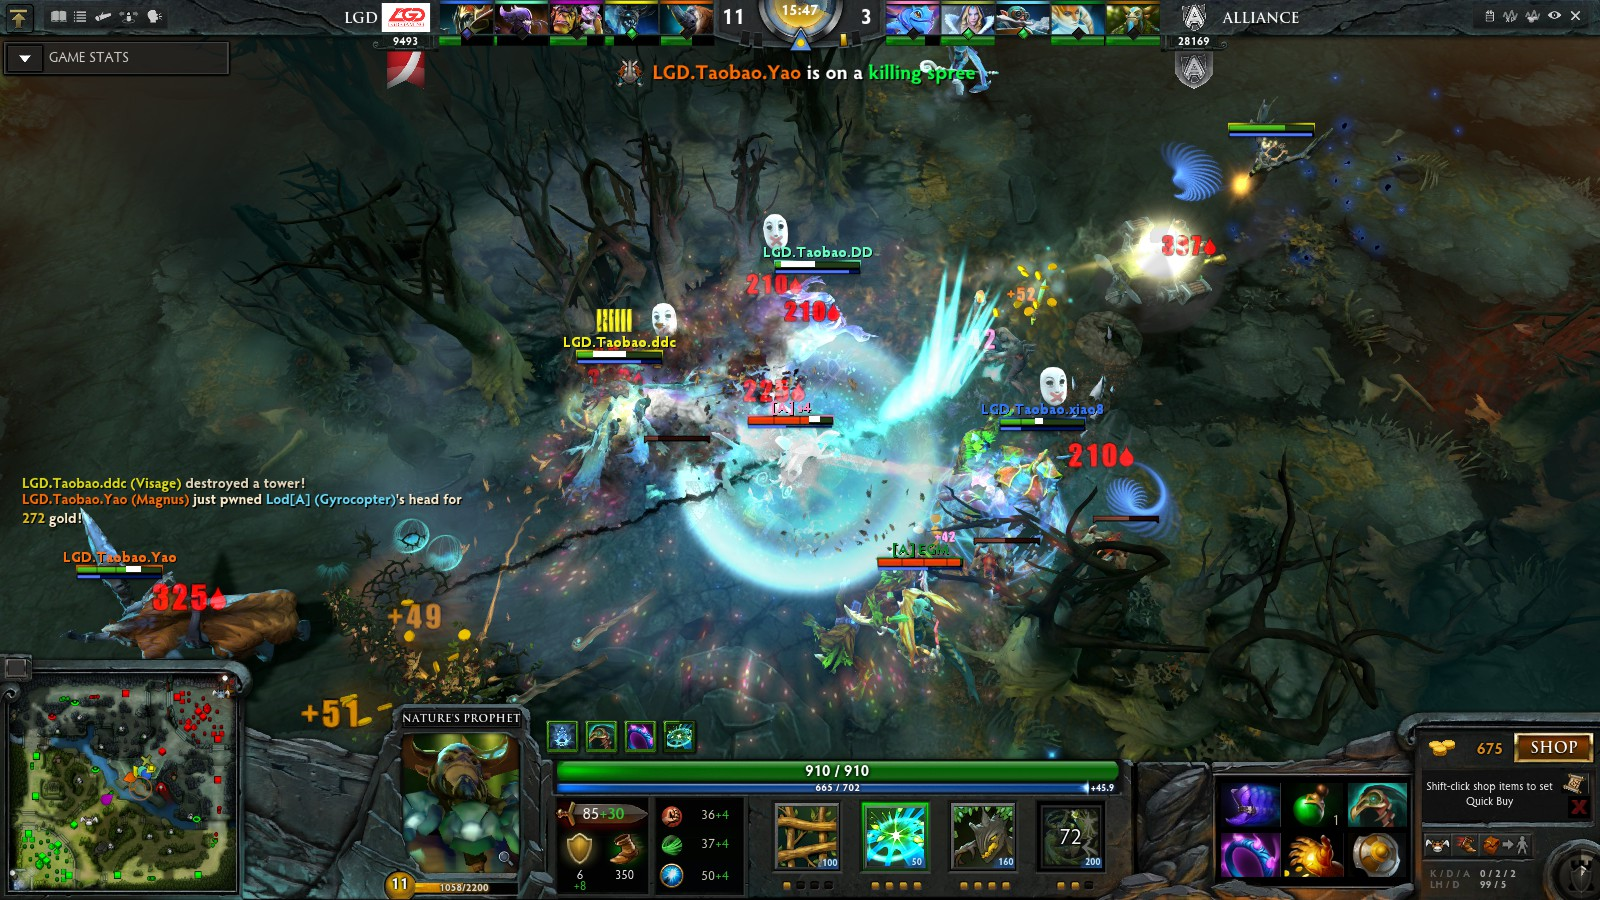 teamkiller how to download dota 2 gameplay free full version for